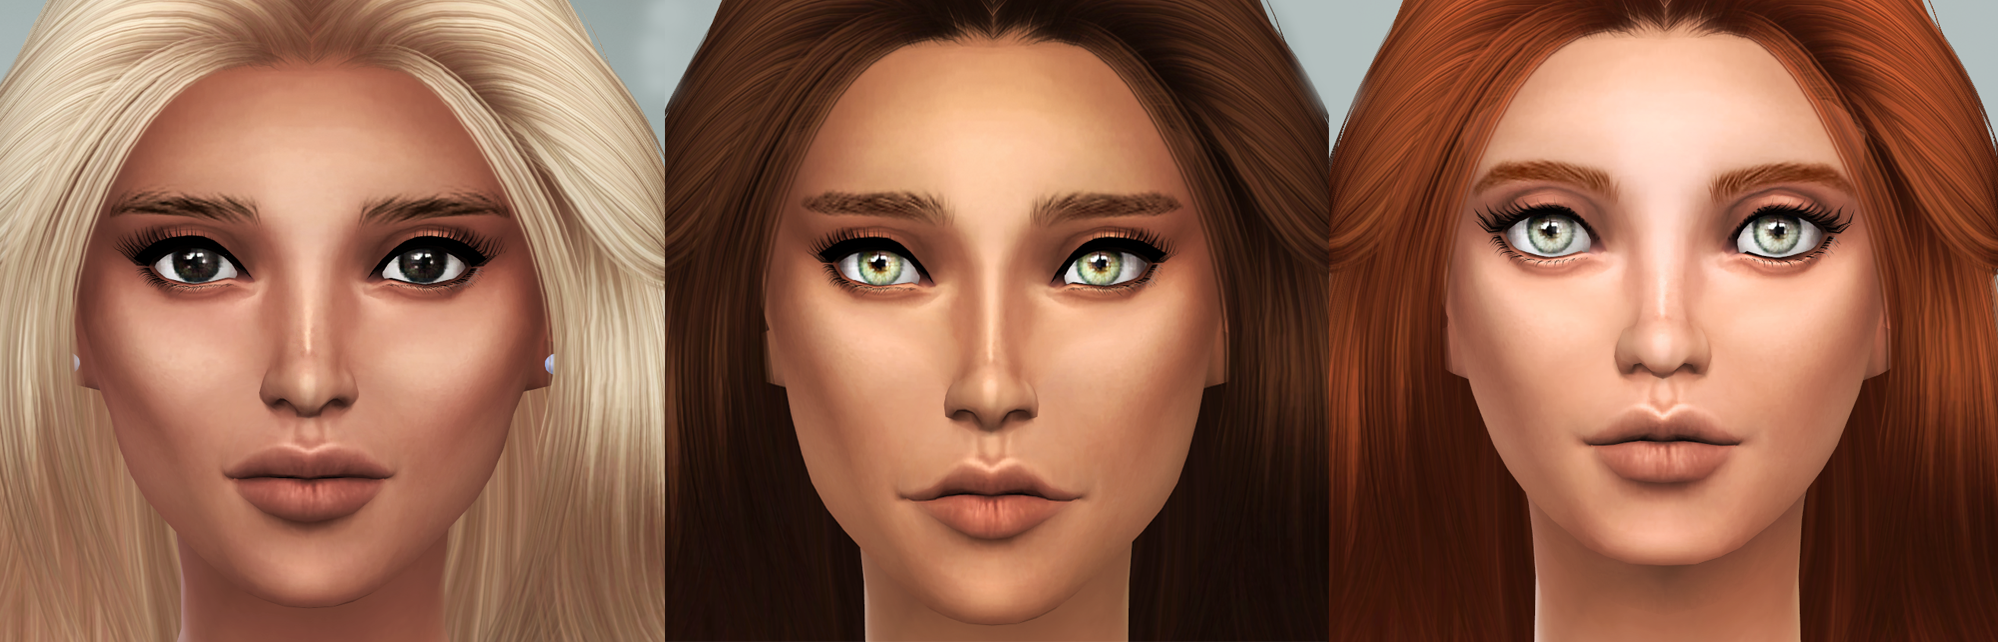 Yeying Skin by s4models